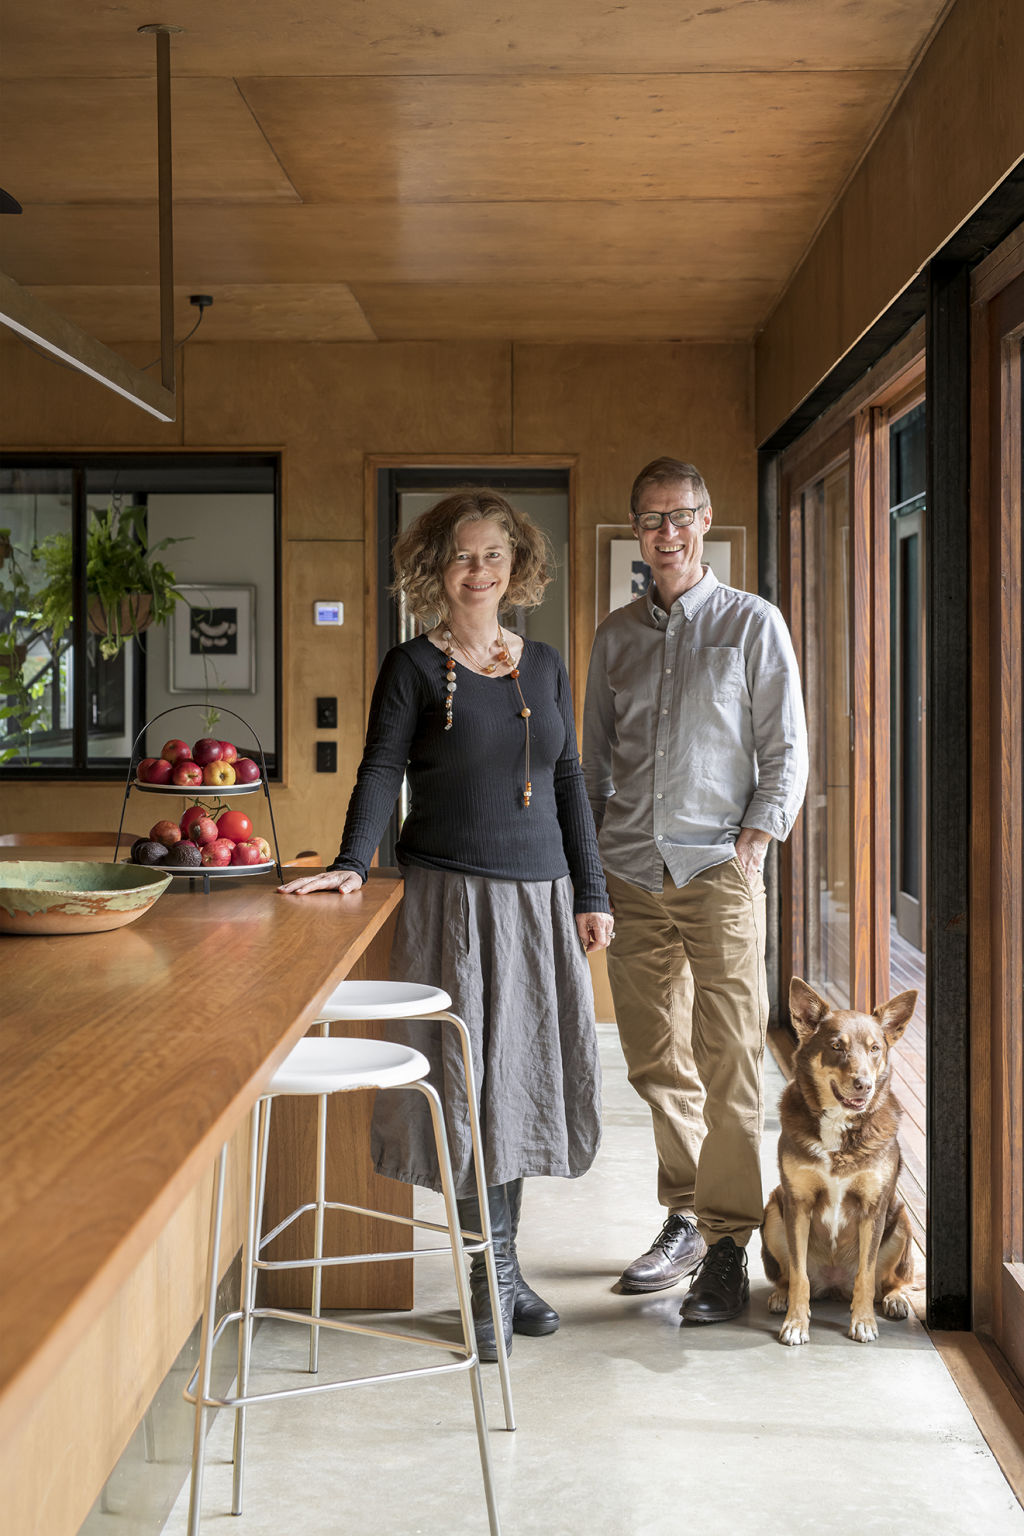 Architectural_partners_Sonia_Graham_and_Chris_Bligh_have_made_a_multi-functional_home_work_for_them_their_staff_and_a_tenant._Photo_Mindi_Cooke_pckwmt